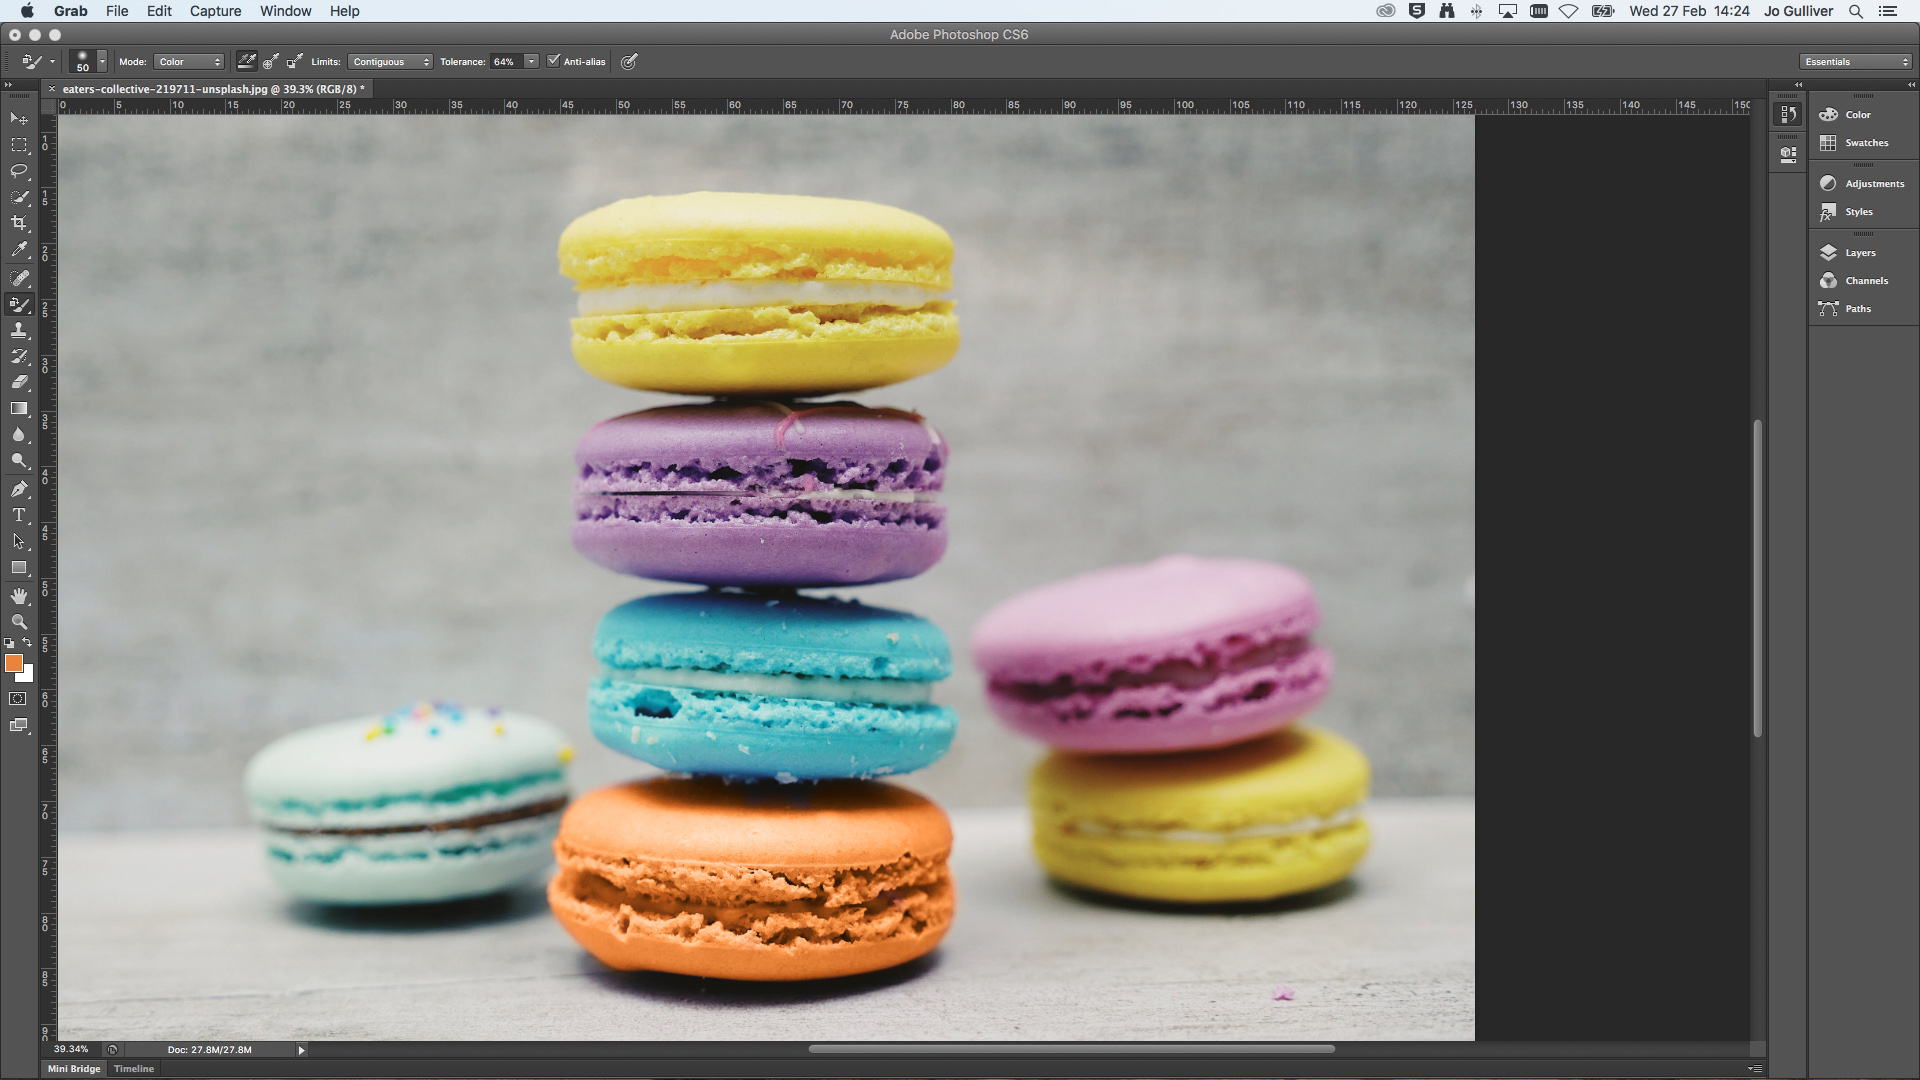 A stack of macaroons in a new colour